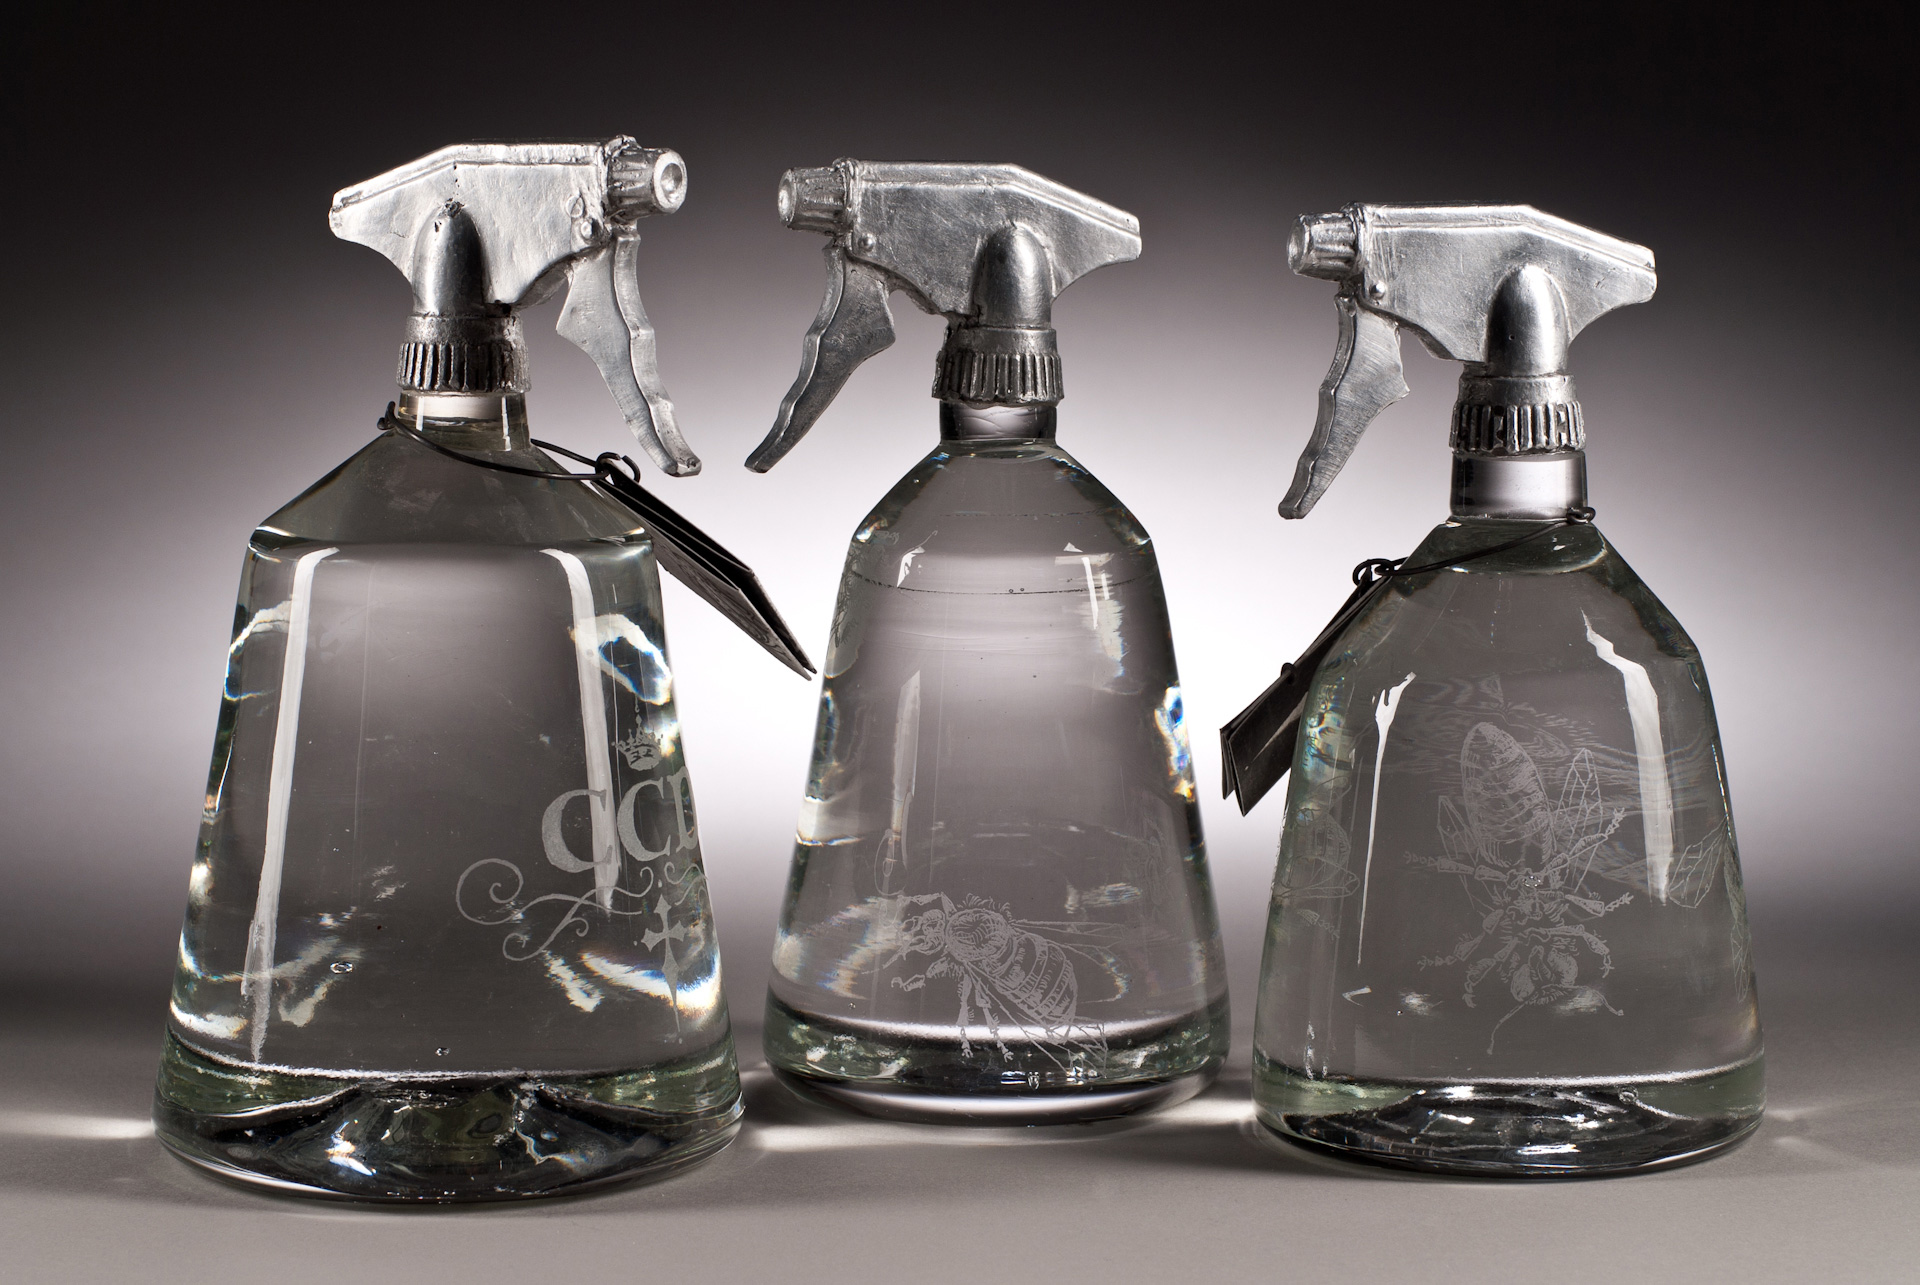 Three hand blown glass bottles , titled Spray, with printed labels and cast aluminum sprayer nozzles.